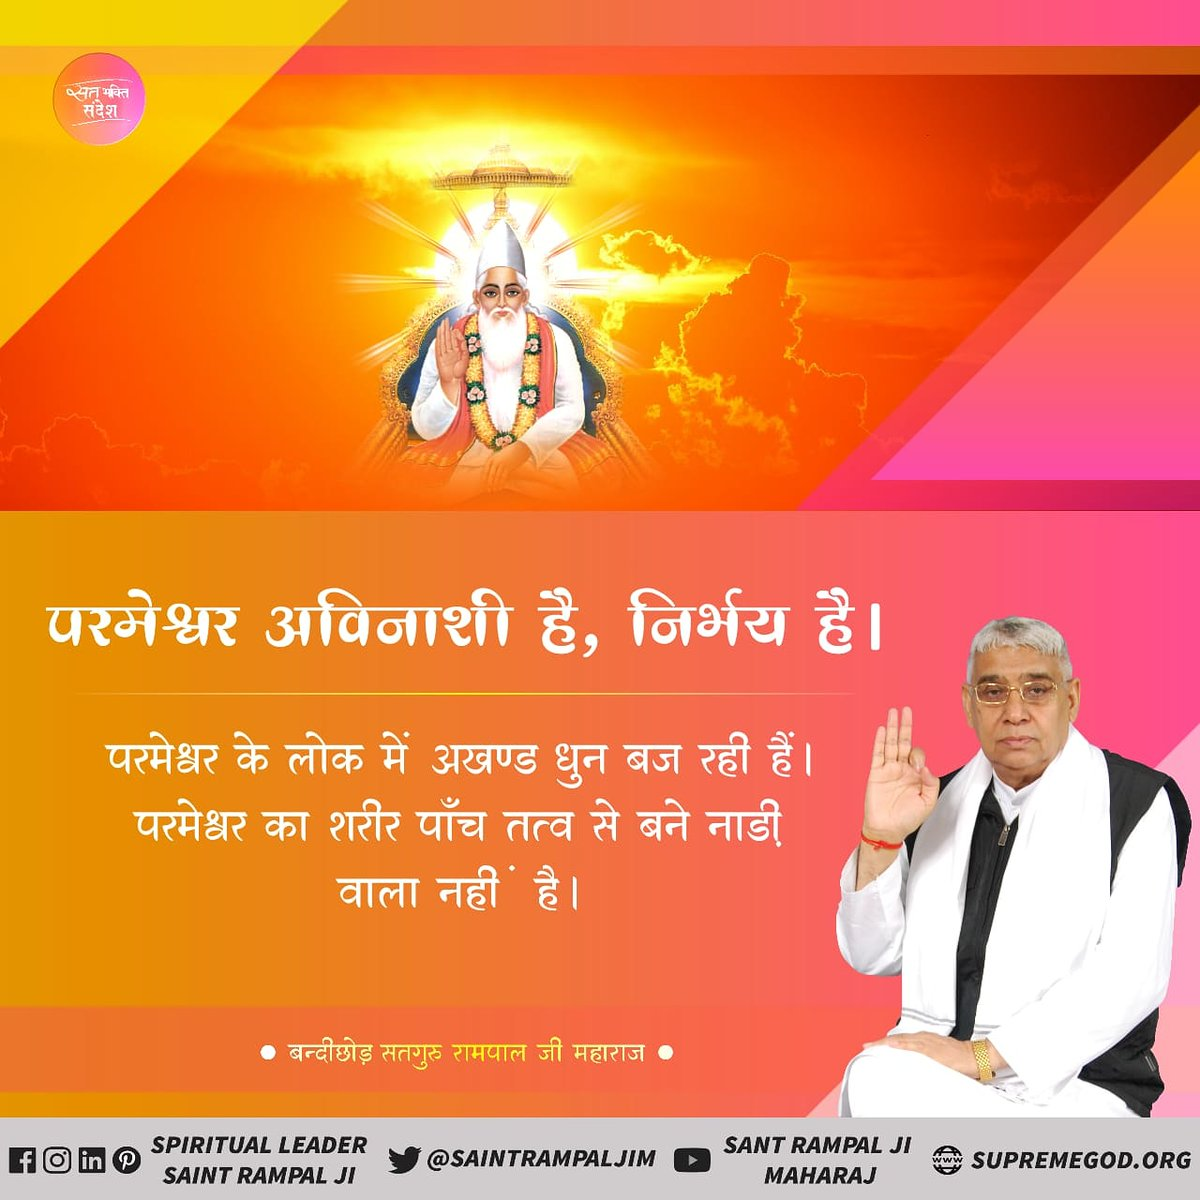 #अल्ला_कोण_है Real God is Kabir  God created the universe in six days and all humans  I had ordered for the diet that I have given fruitful trees and seedlings for you to watch. Watch Sadhana TV 7,30 PM #भगवान_कौन_हैंpic.twitter.com/ywYSliEmhz